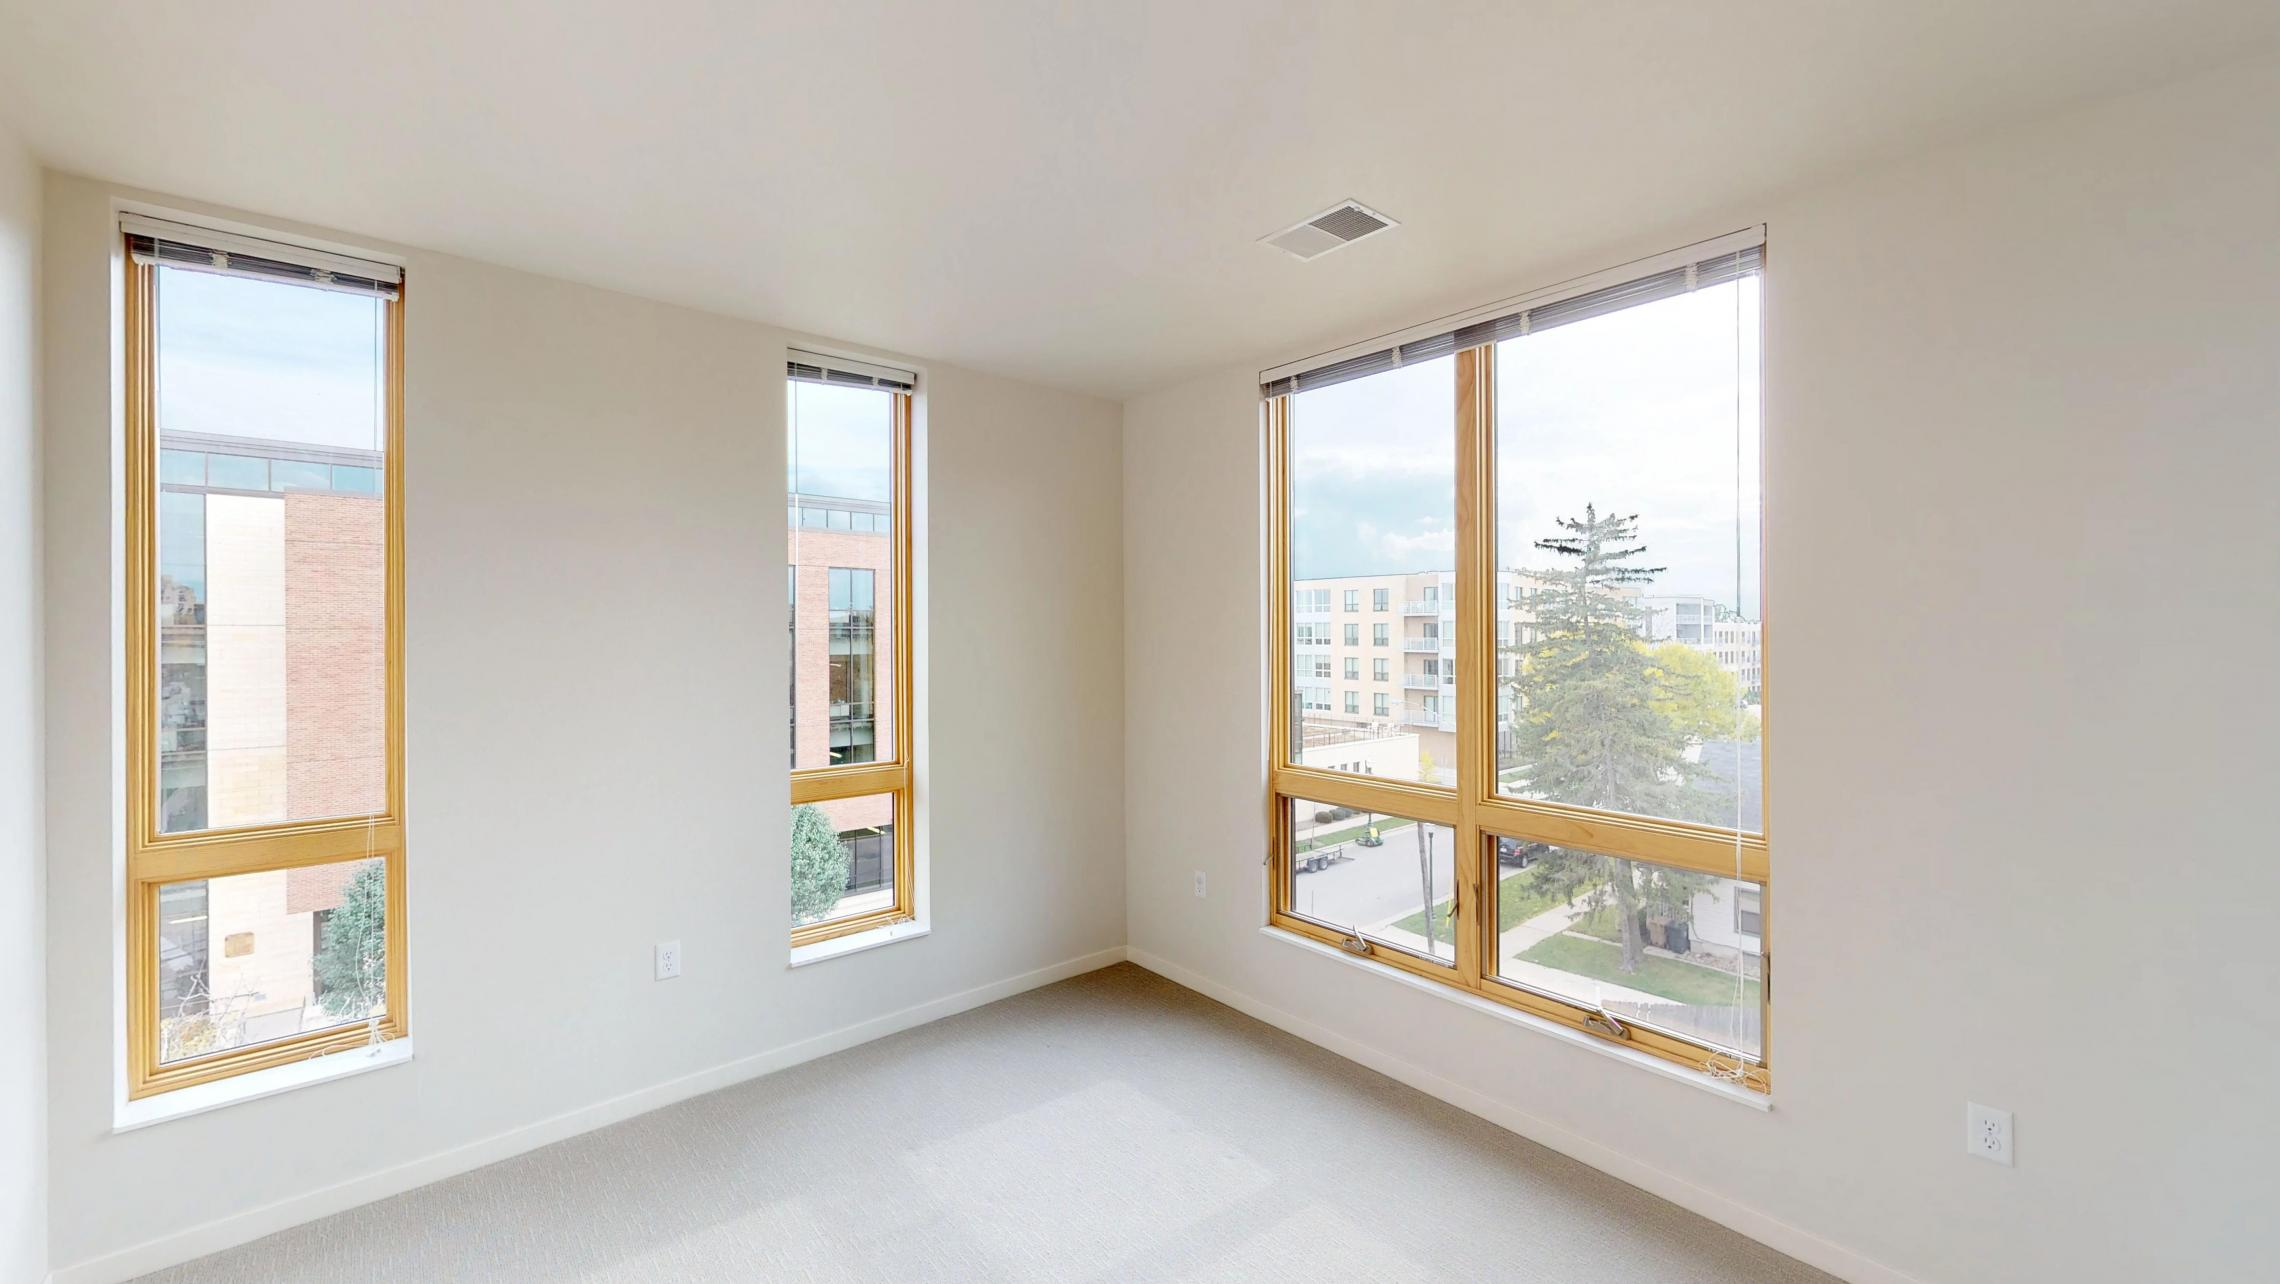 Quarter-Row-Apartments-Downtown-Madison-Capitol-Lake-Views-Balcony-Sun-Terrace-Courtyard-Fireplace-Dogs-Cats-Modern-Upscale-Apartment-401-Three-Bedroom-Two-Bathroom